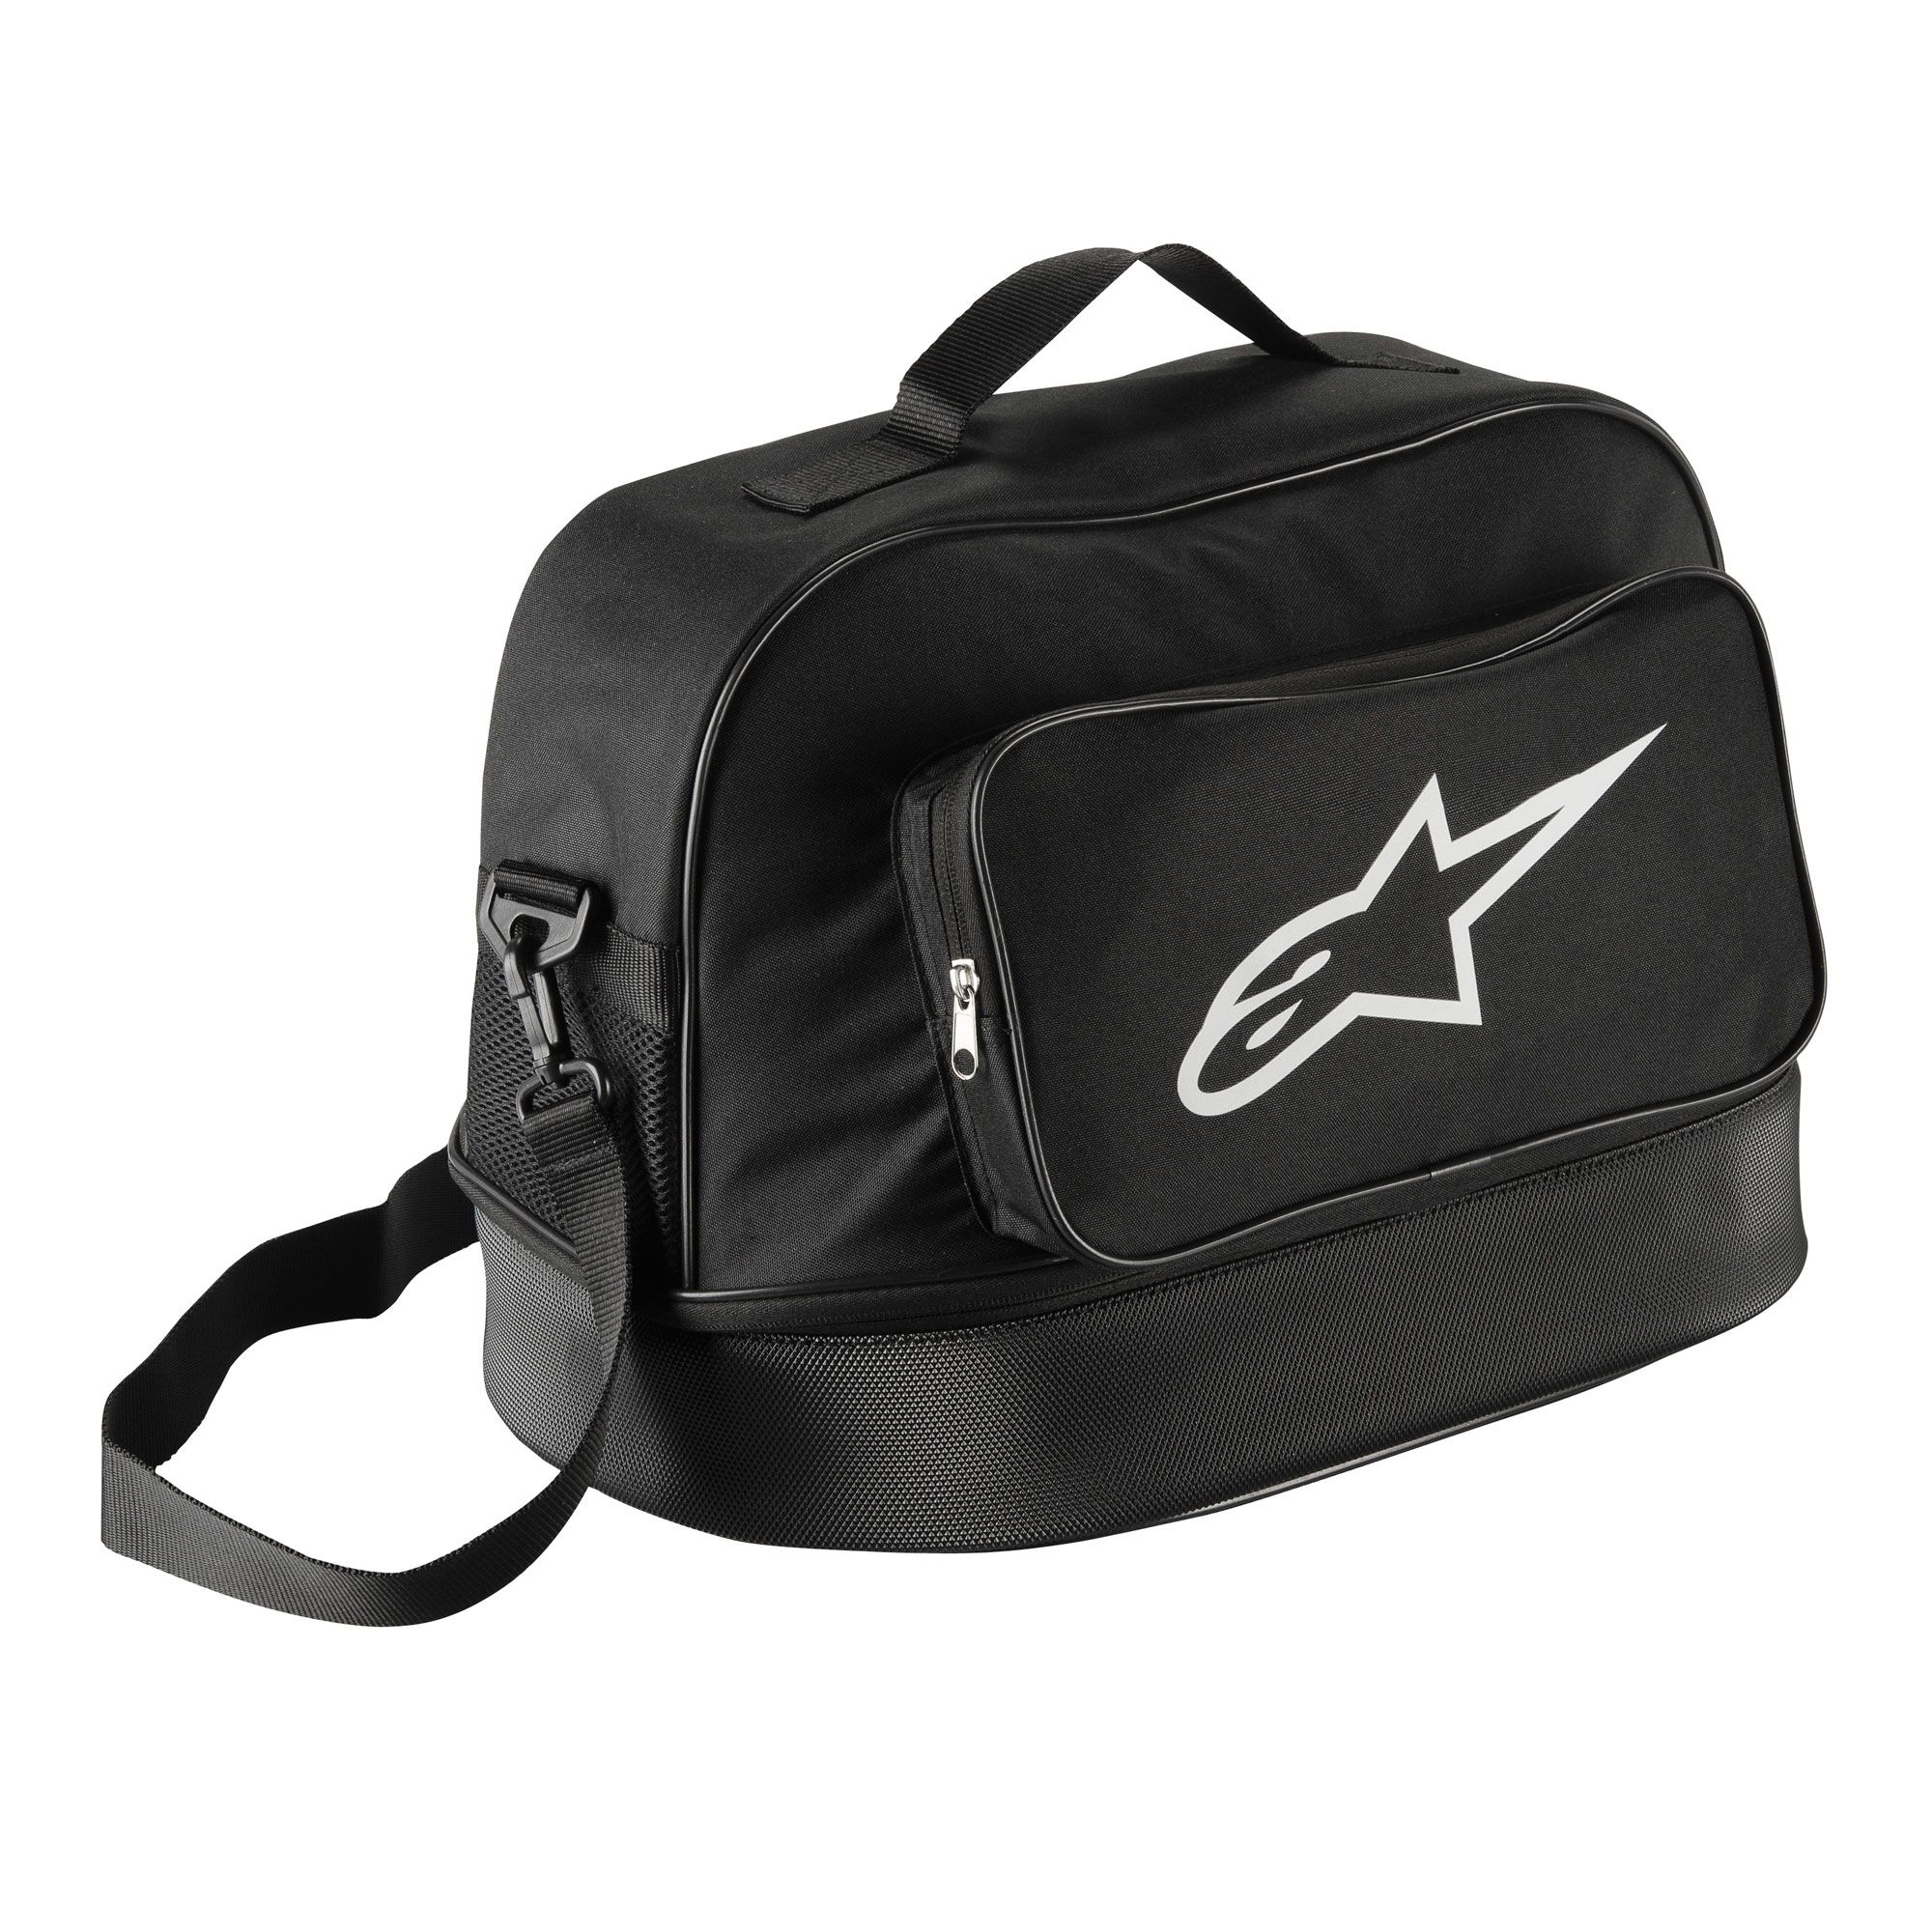 Alpinestars Flow Helmet Bag